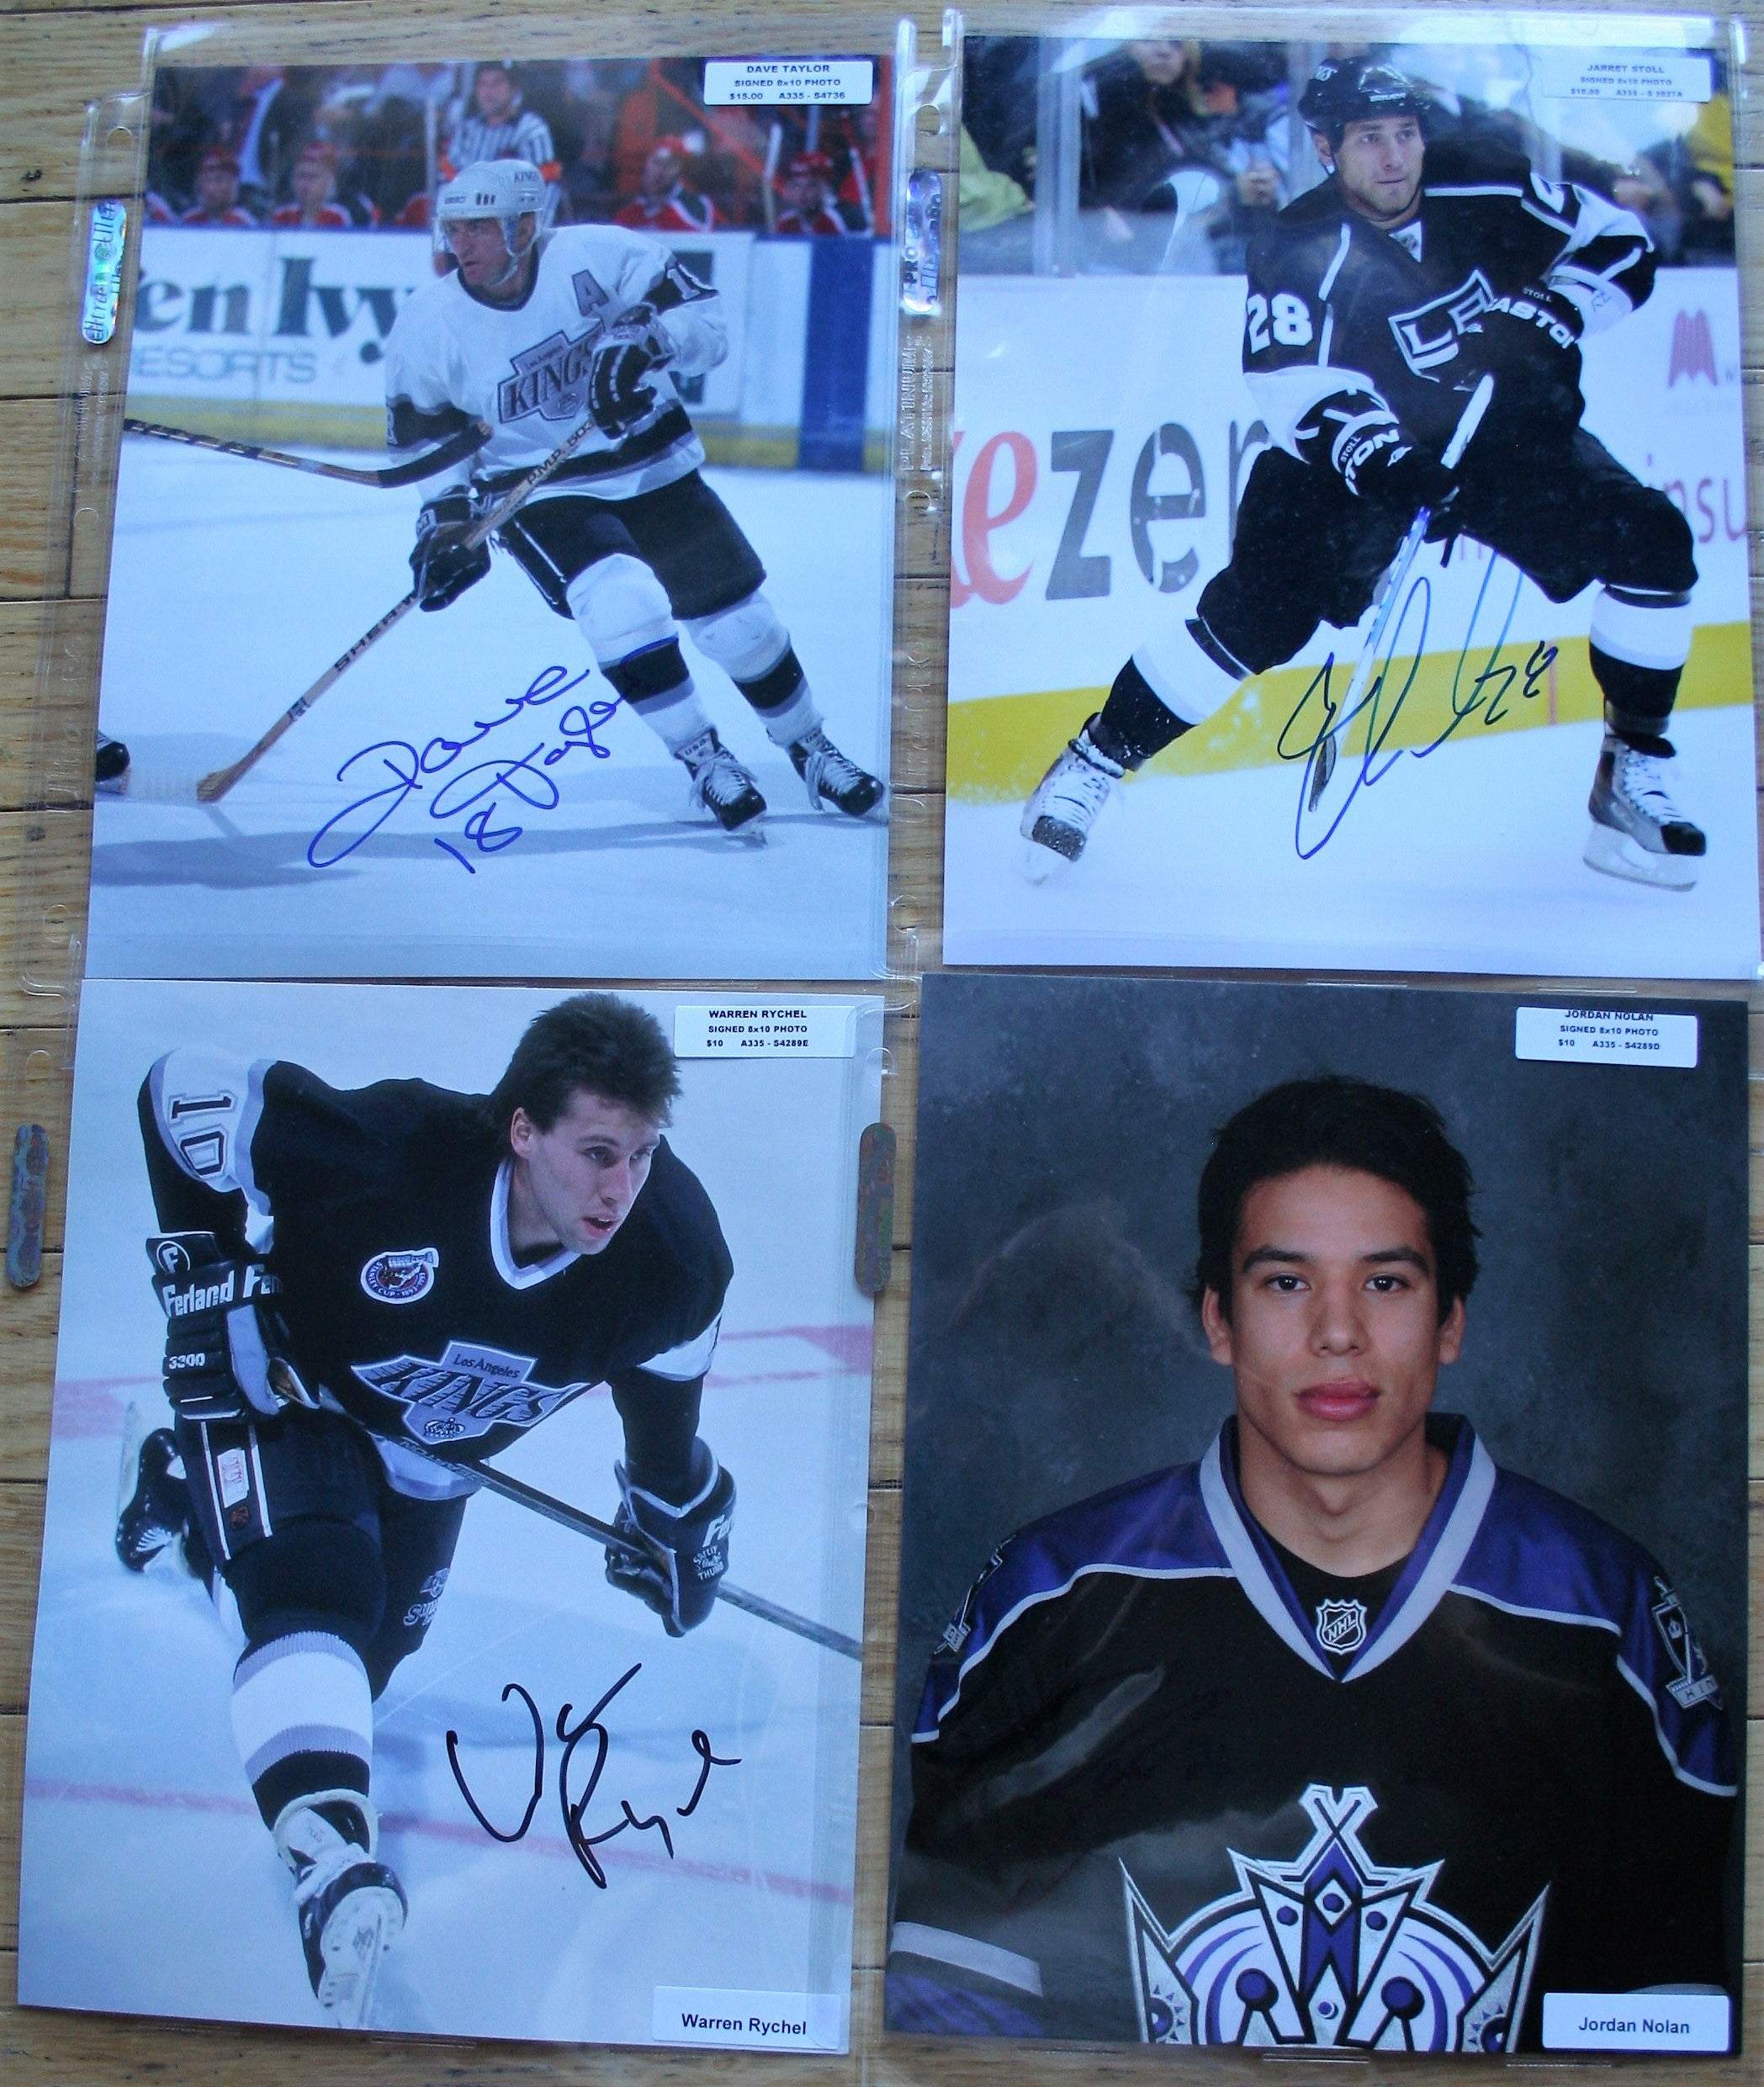 4 Signed LA Kings NHL 8x10 Photos  Taylor, Stoll, Rychel, Nolan   FREE SHIPPING  c/w COA  NHL Hockey Memorabilia